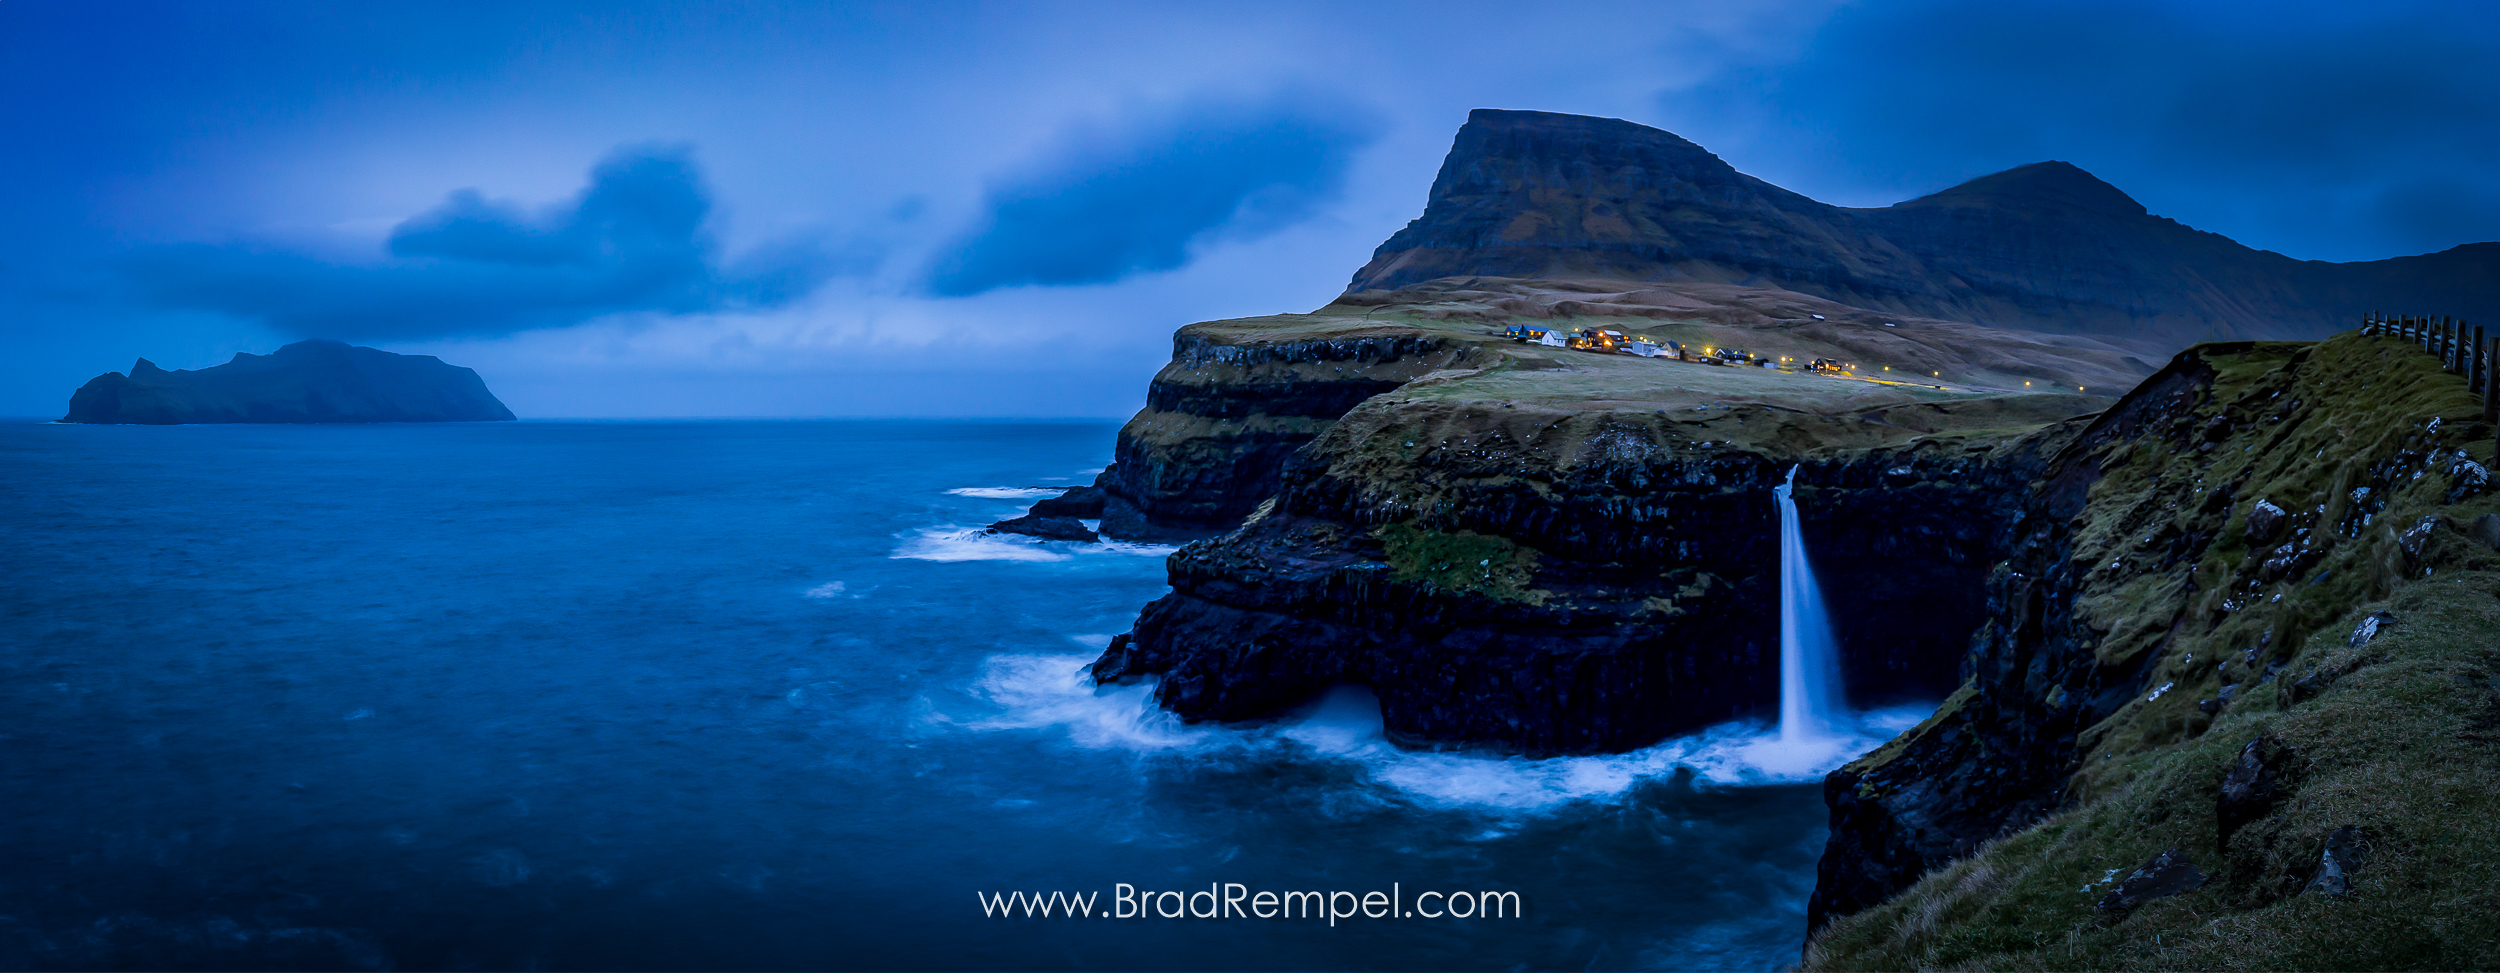 Gasadalur and Mulafossur, Faroe Islands - Brad Rempel